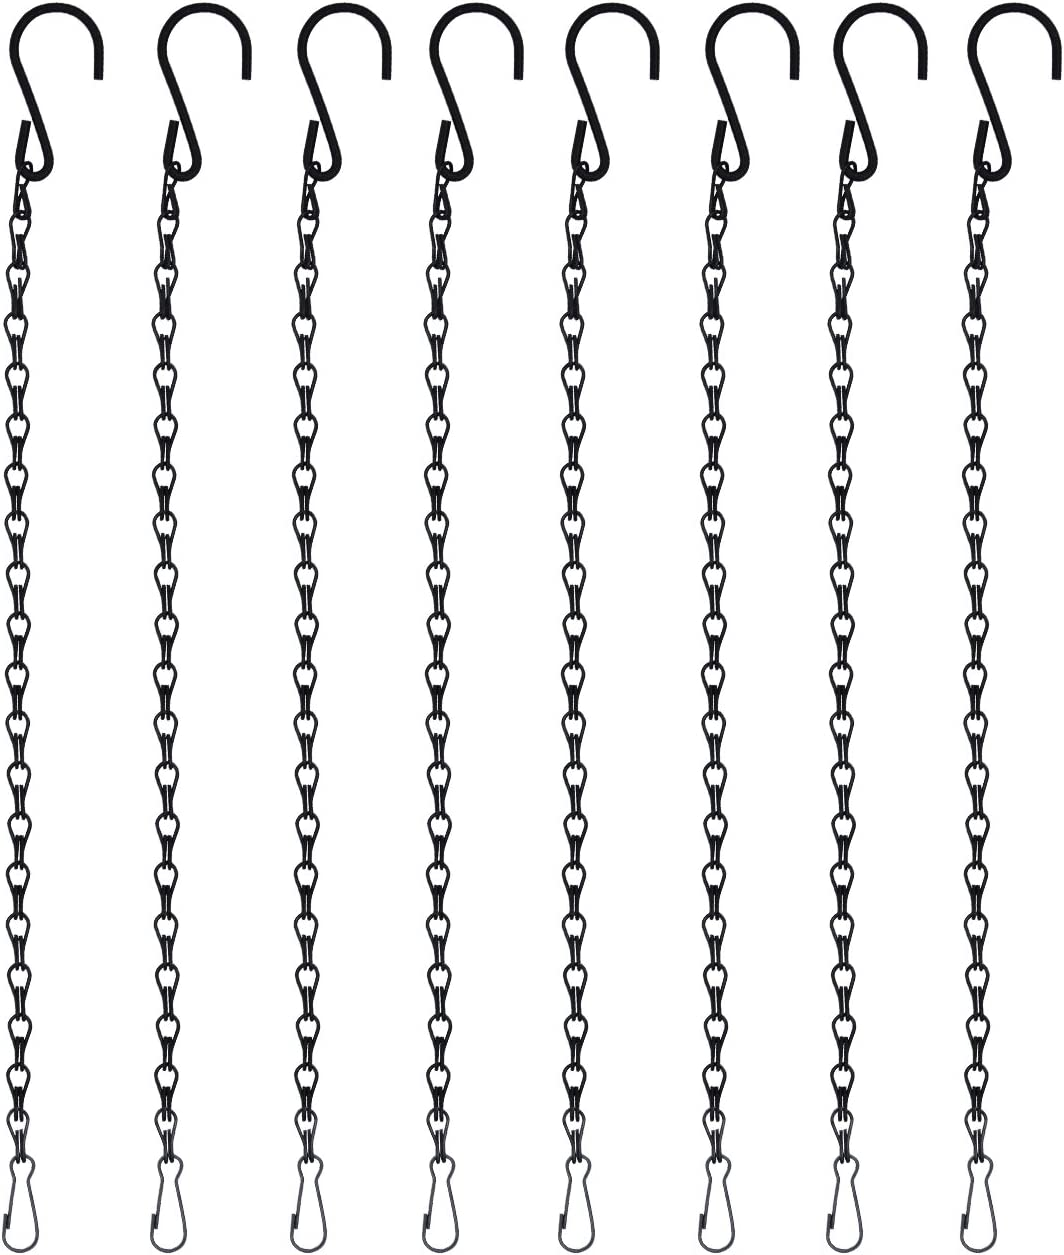 B074QK1JJN 8pcs 19.7 inch/ 50cm Black Chains Flower Pot Basket Replacement Chain Hanger for Bird Feeders, Planters, Lanterns and Ornaments 71curoWIRdL